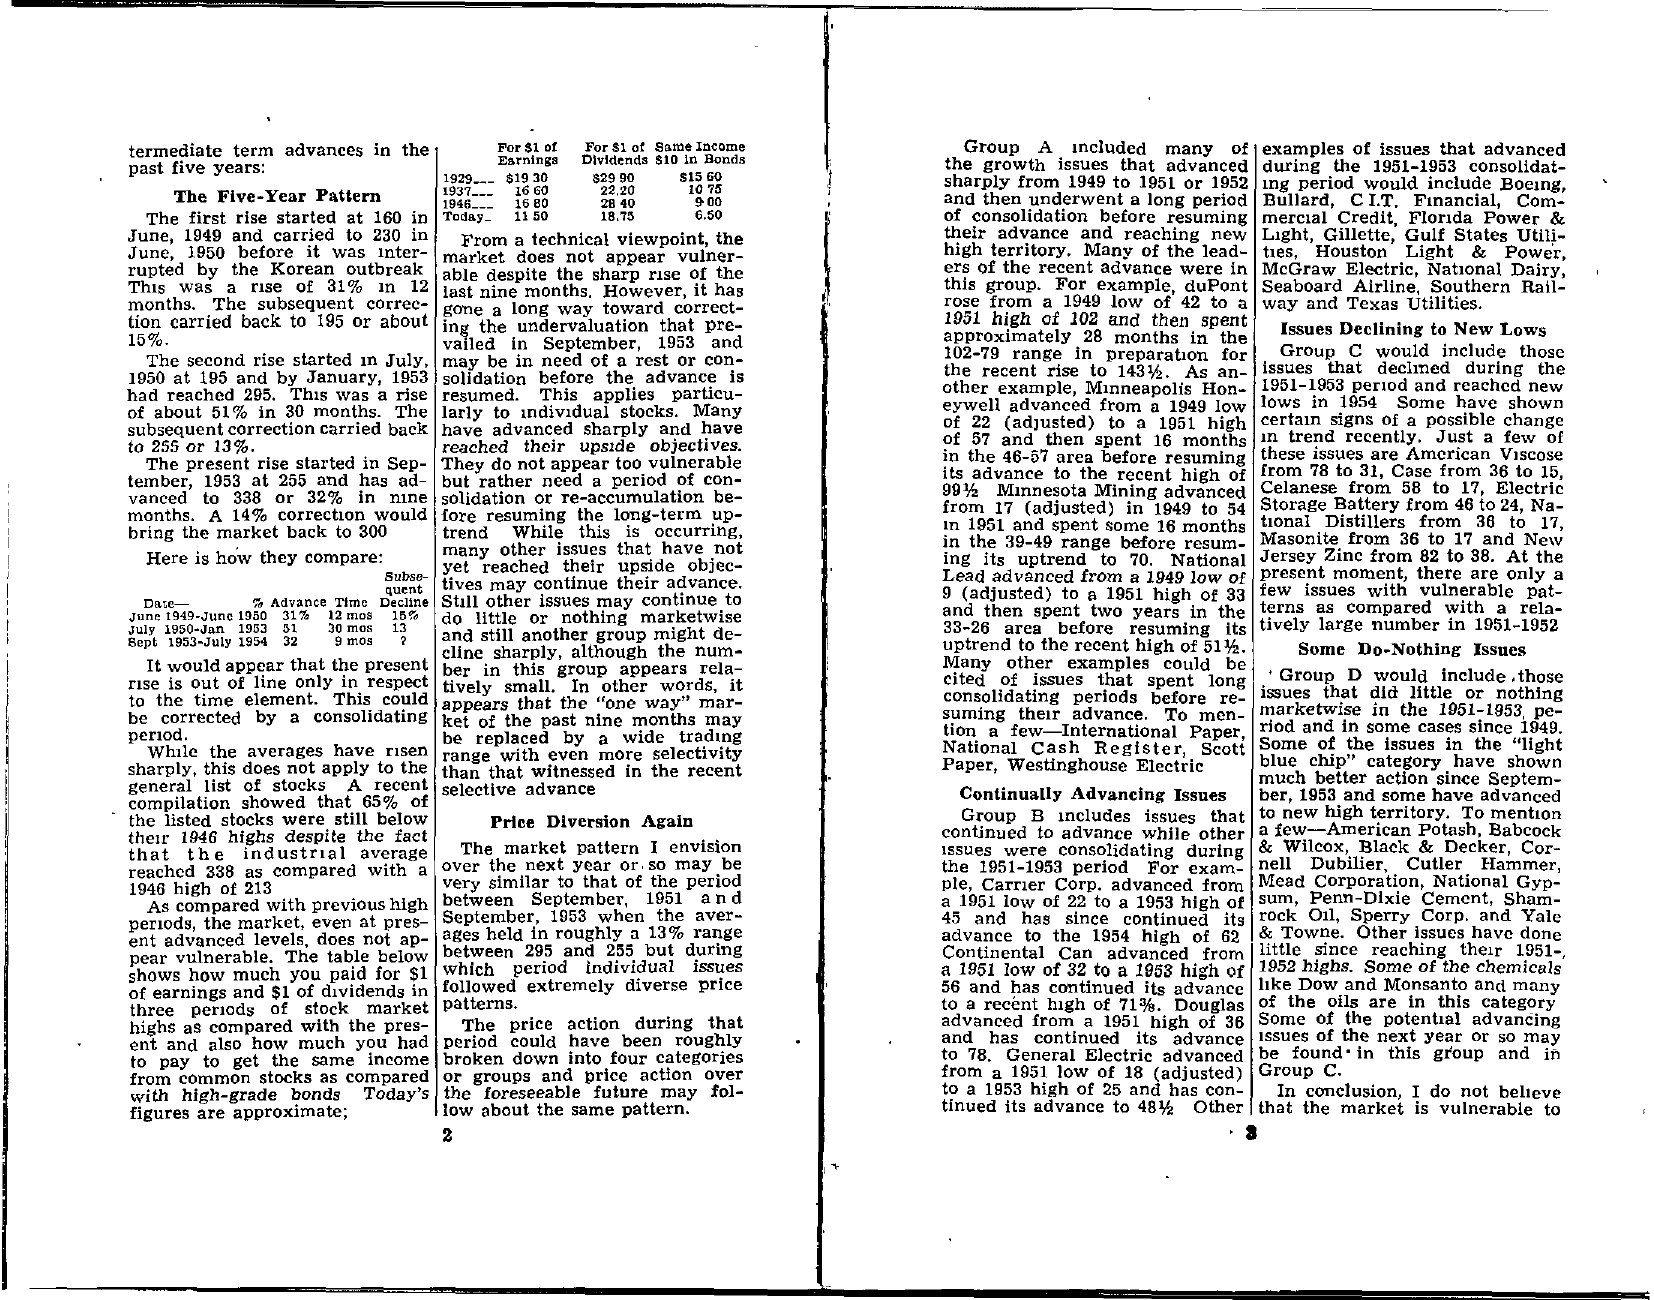 Tabell's Market Letter - July 16, 1954 page 2